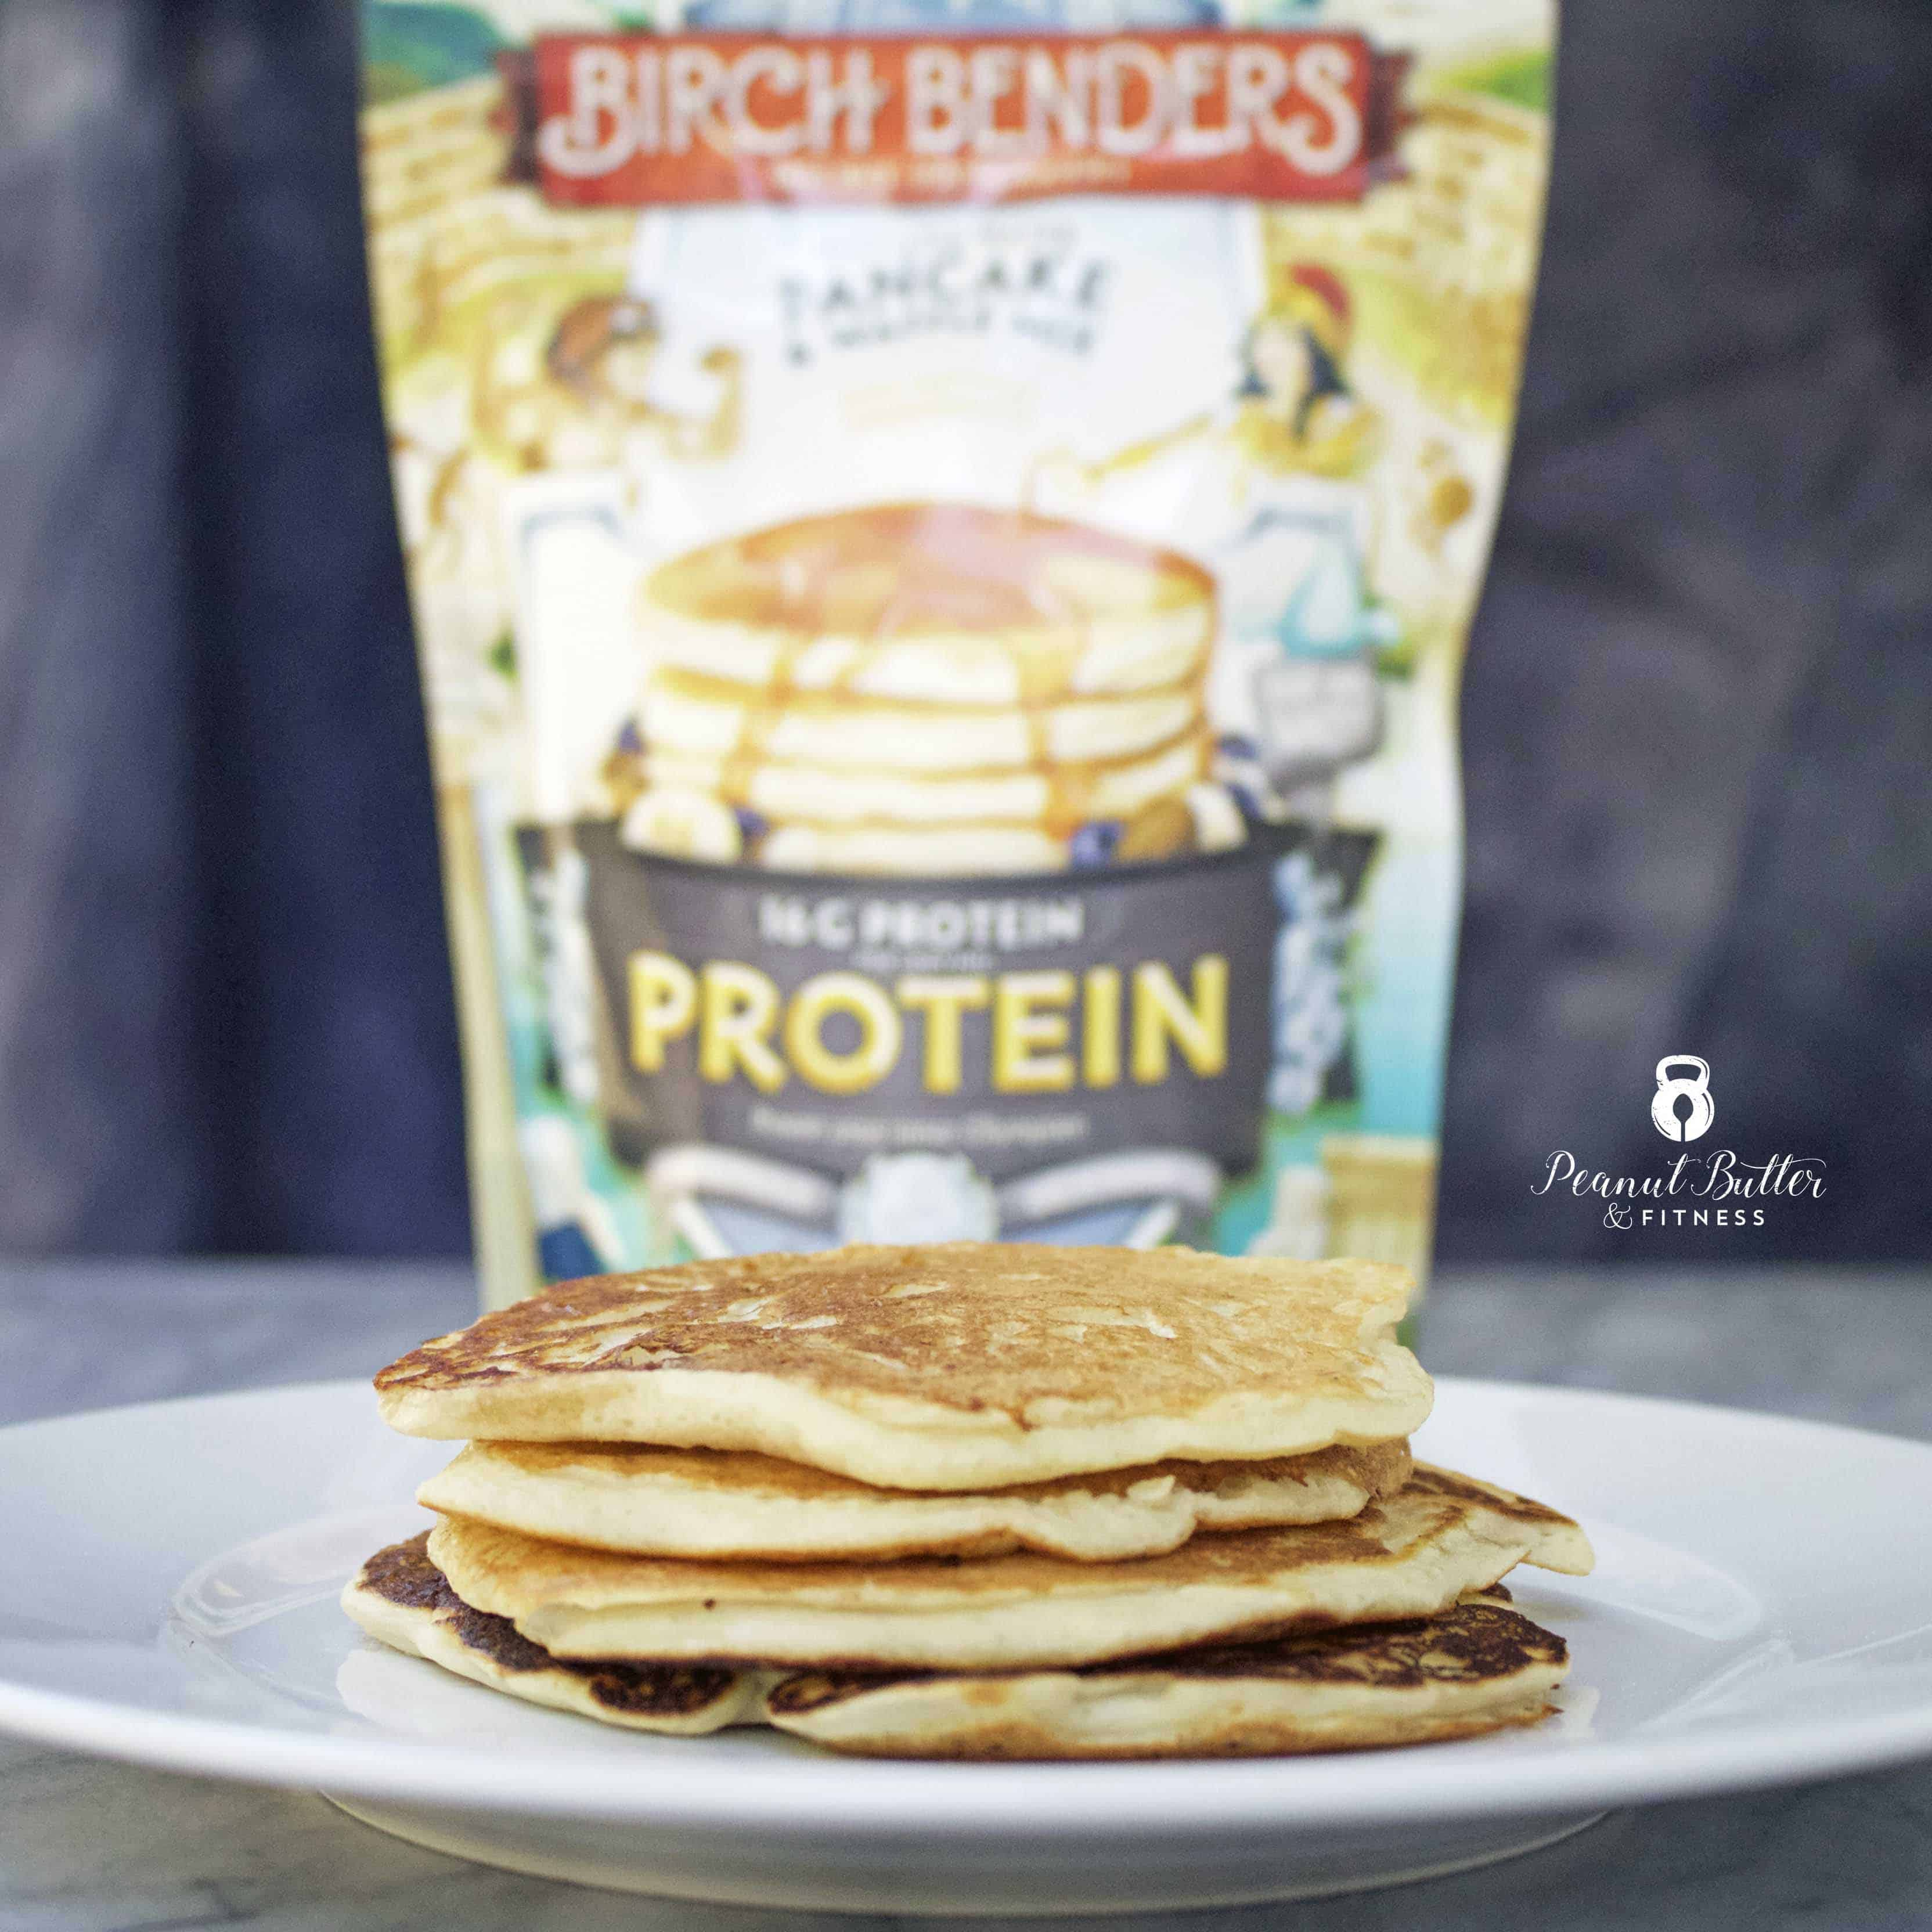 Quest for the best protein pancake mix peanut butter and fitness quest for the best protein pancake mix ccuart Images